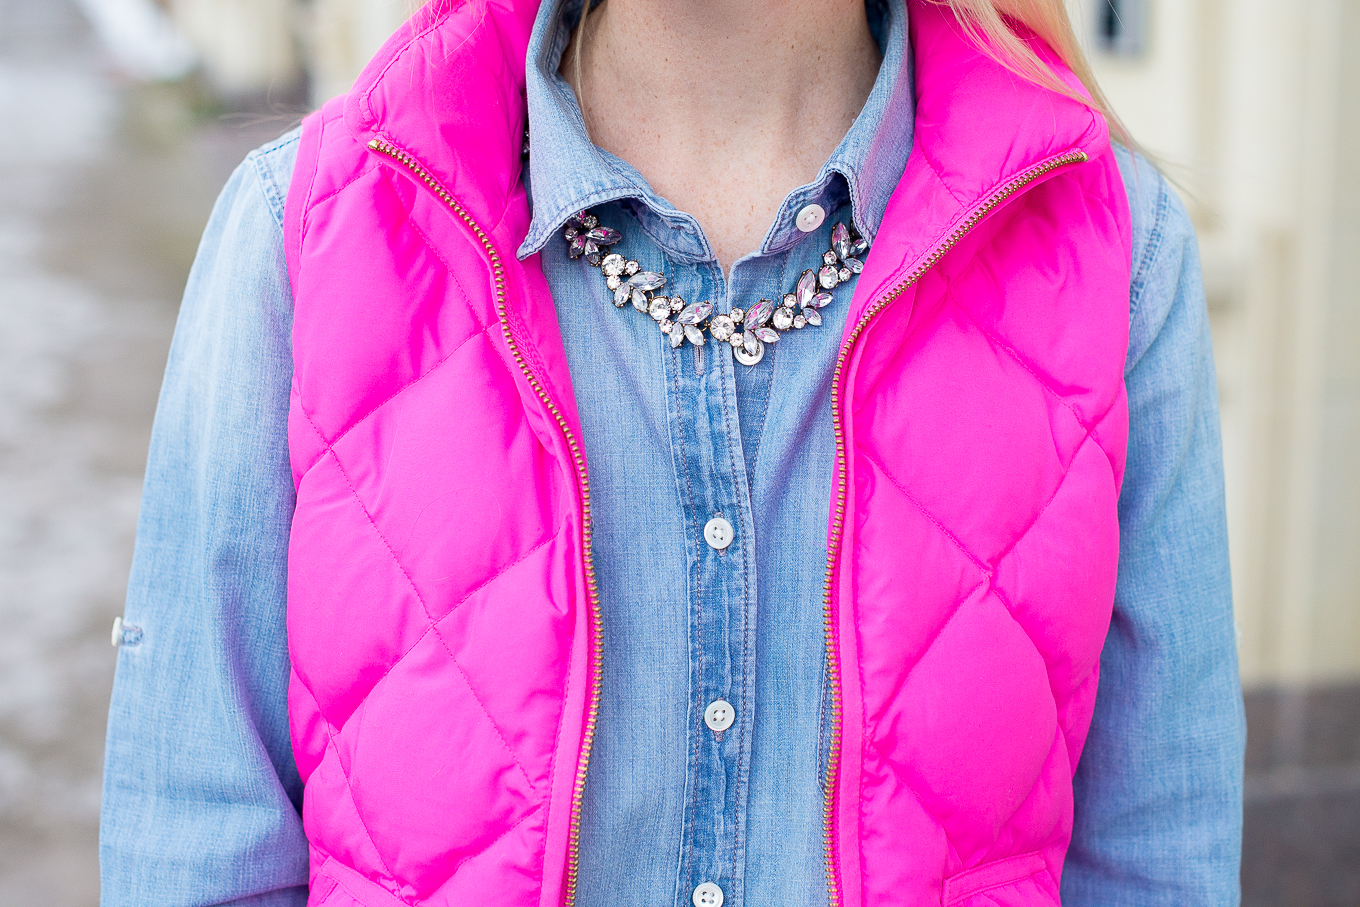 J.Crew Pink Excursion Vest-26